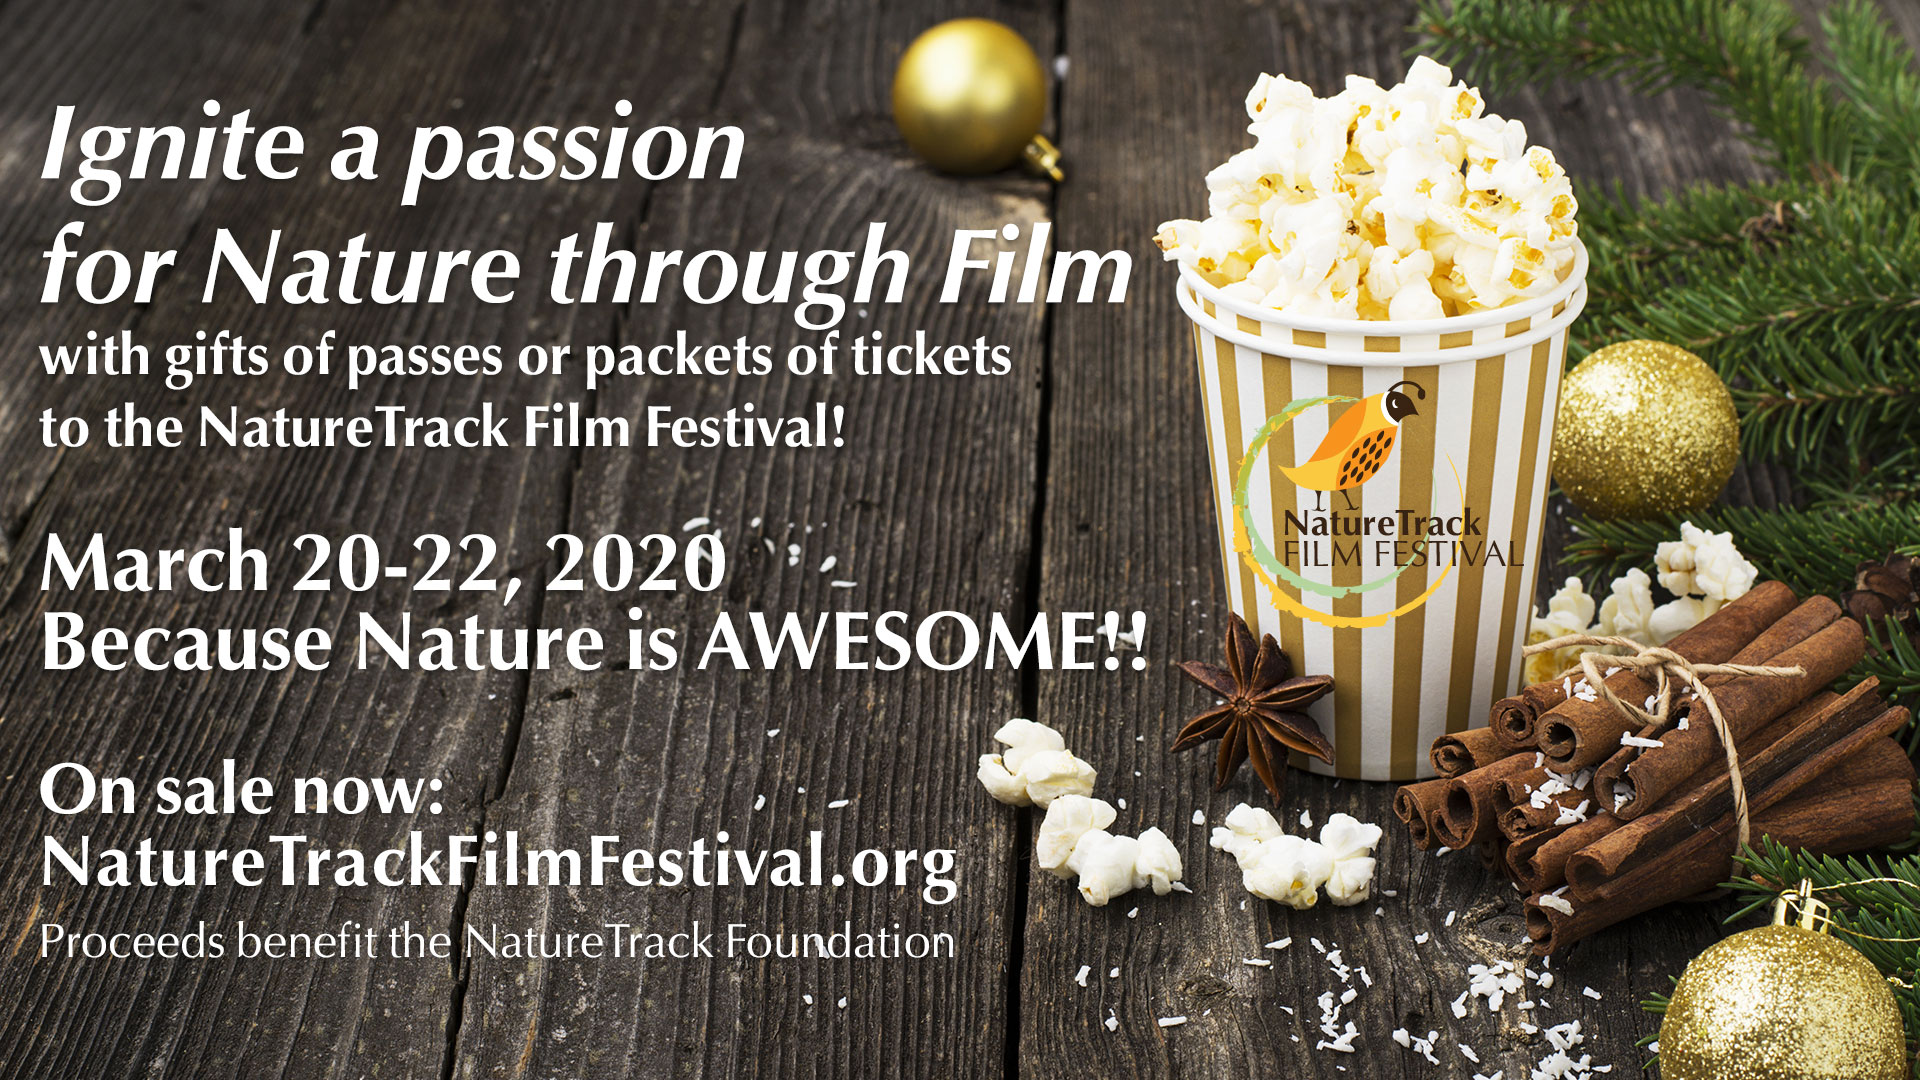 Ignite a passion for nature with your gift this year! Passes and Tickets on sale now for the NatureTrack Film Festival!